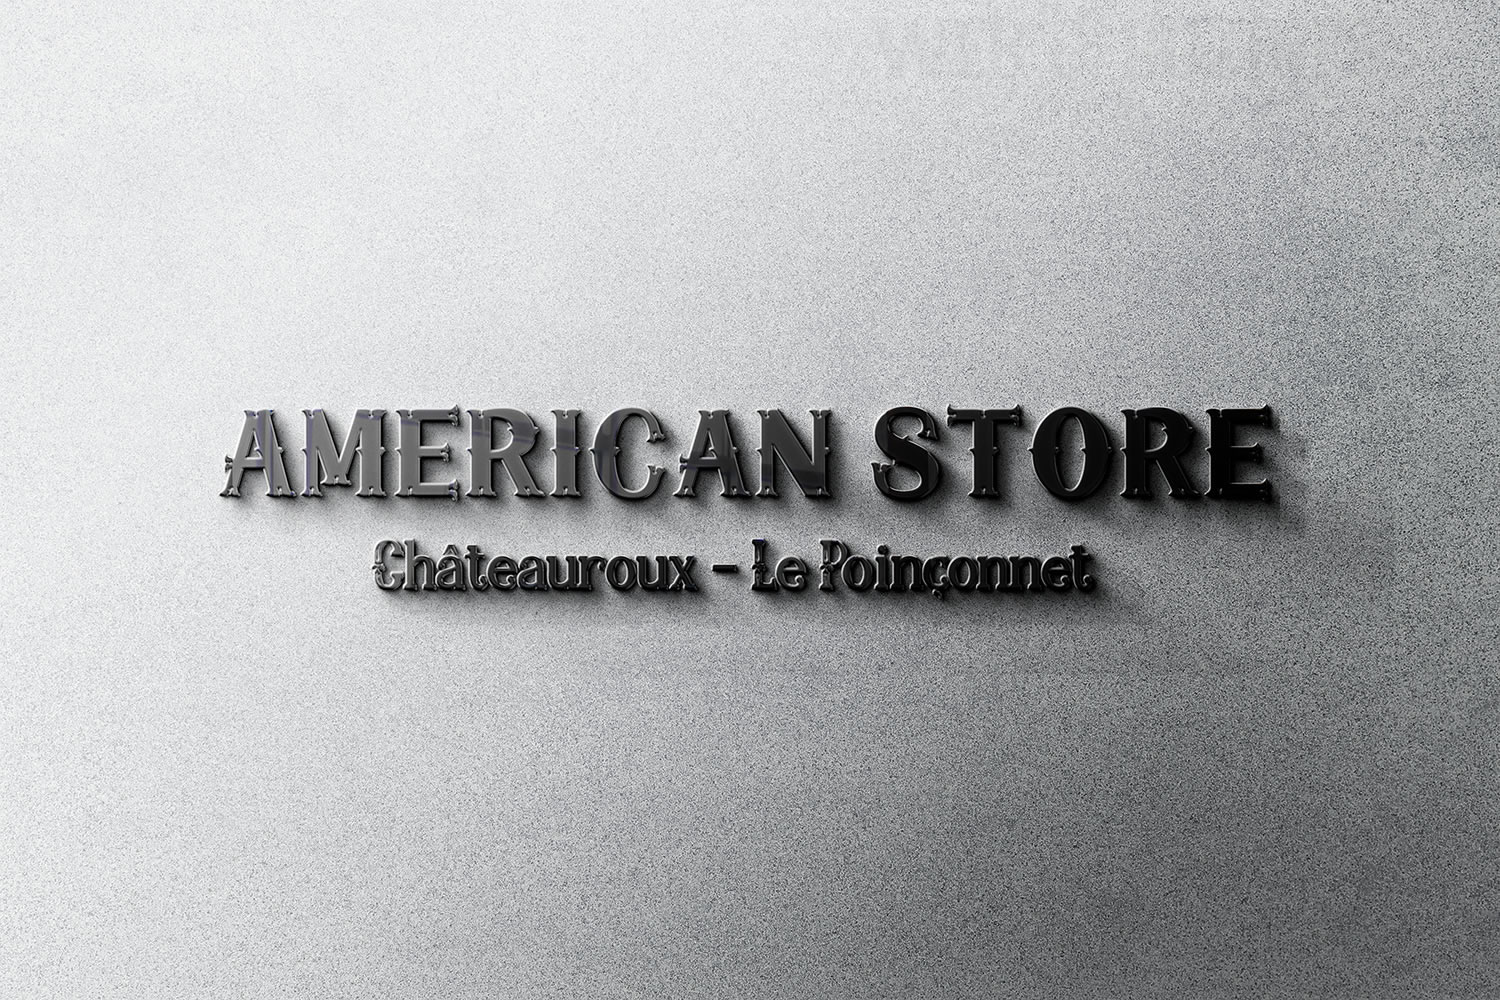 magasins american store - uncategorized - 1671